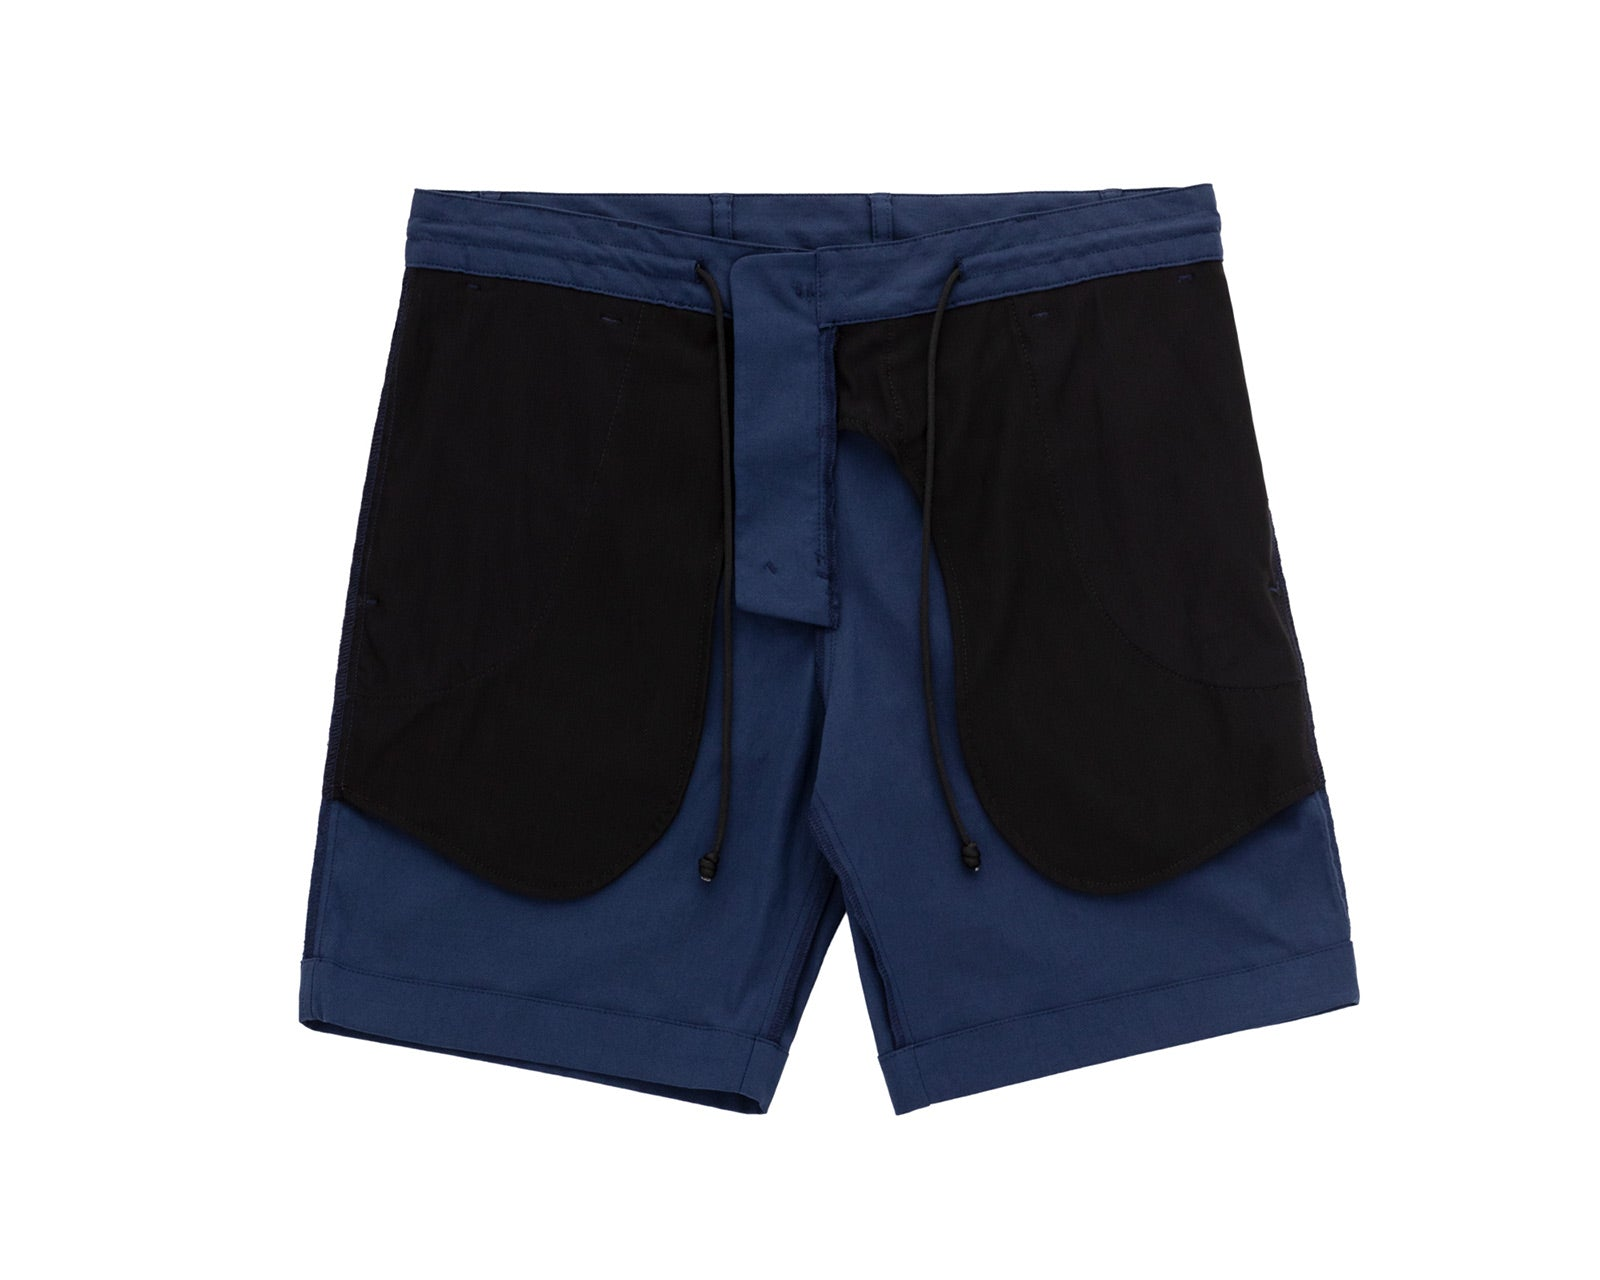 New Way Shorts - Flat - Inside Out